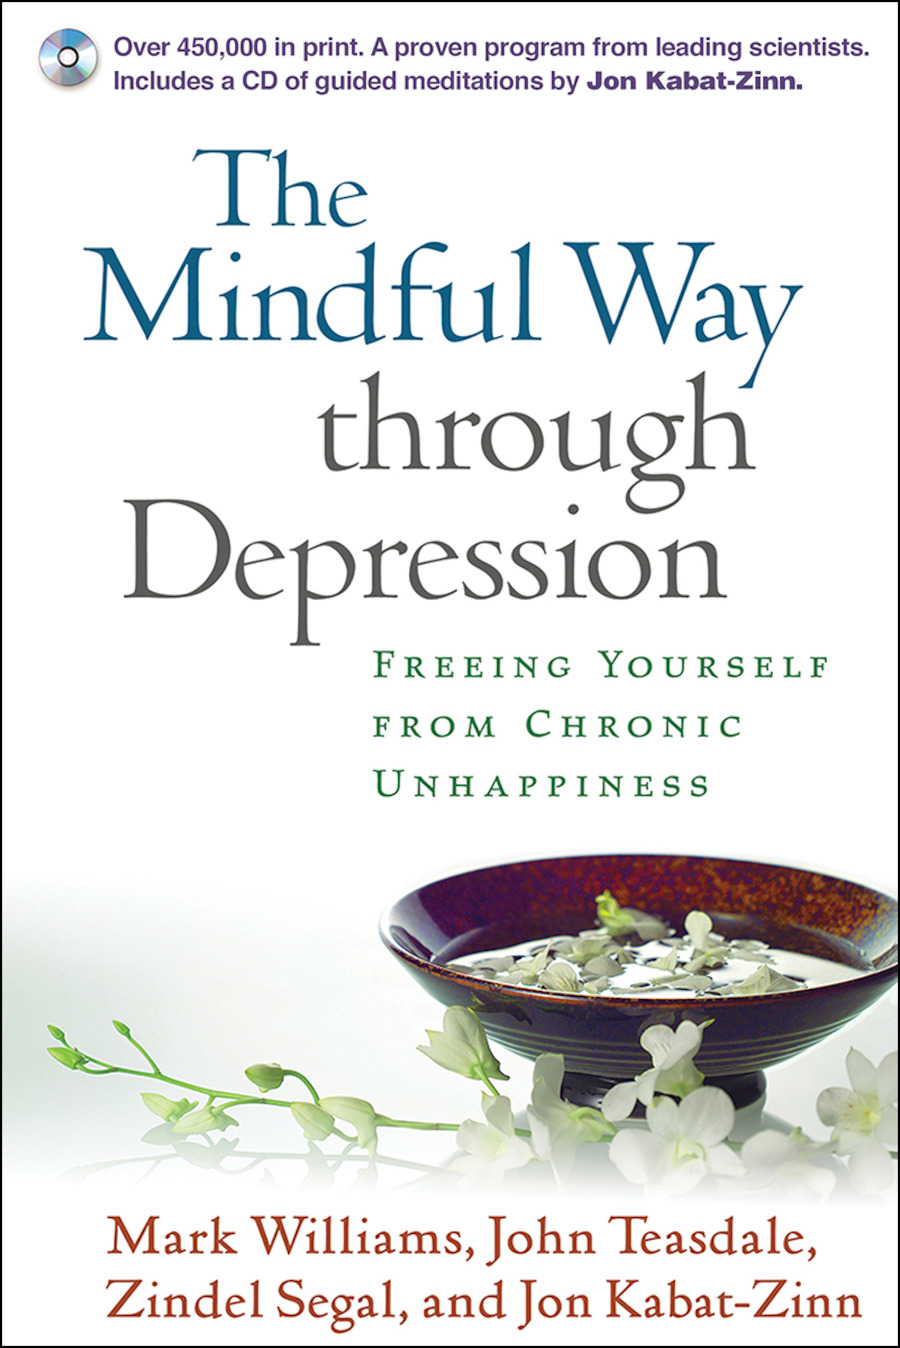 The Mindful Way through Depression: Freeing Yourself from Chronic Unhappiness (Paperback) book cover